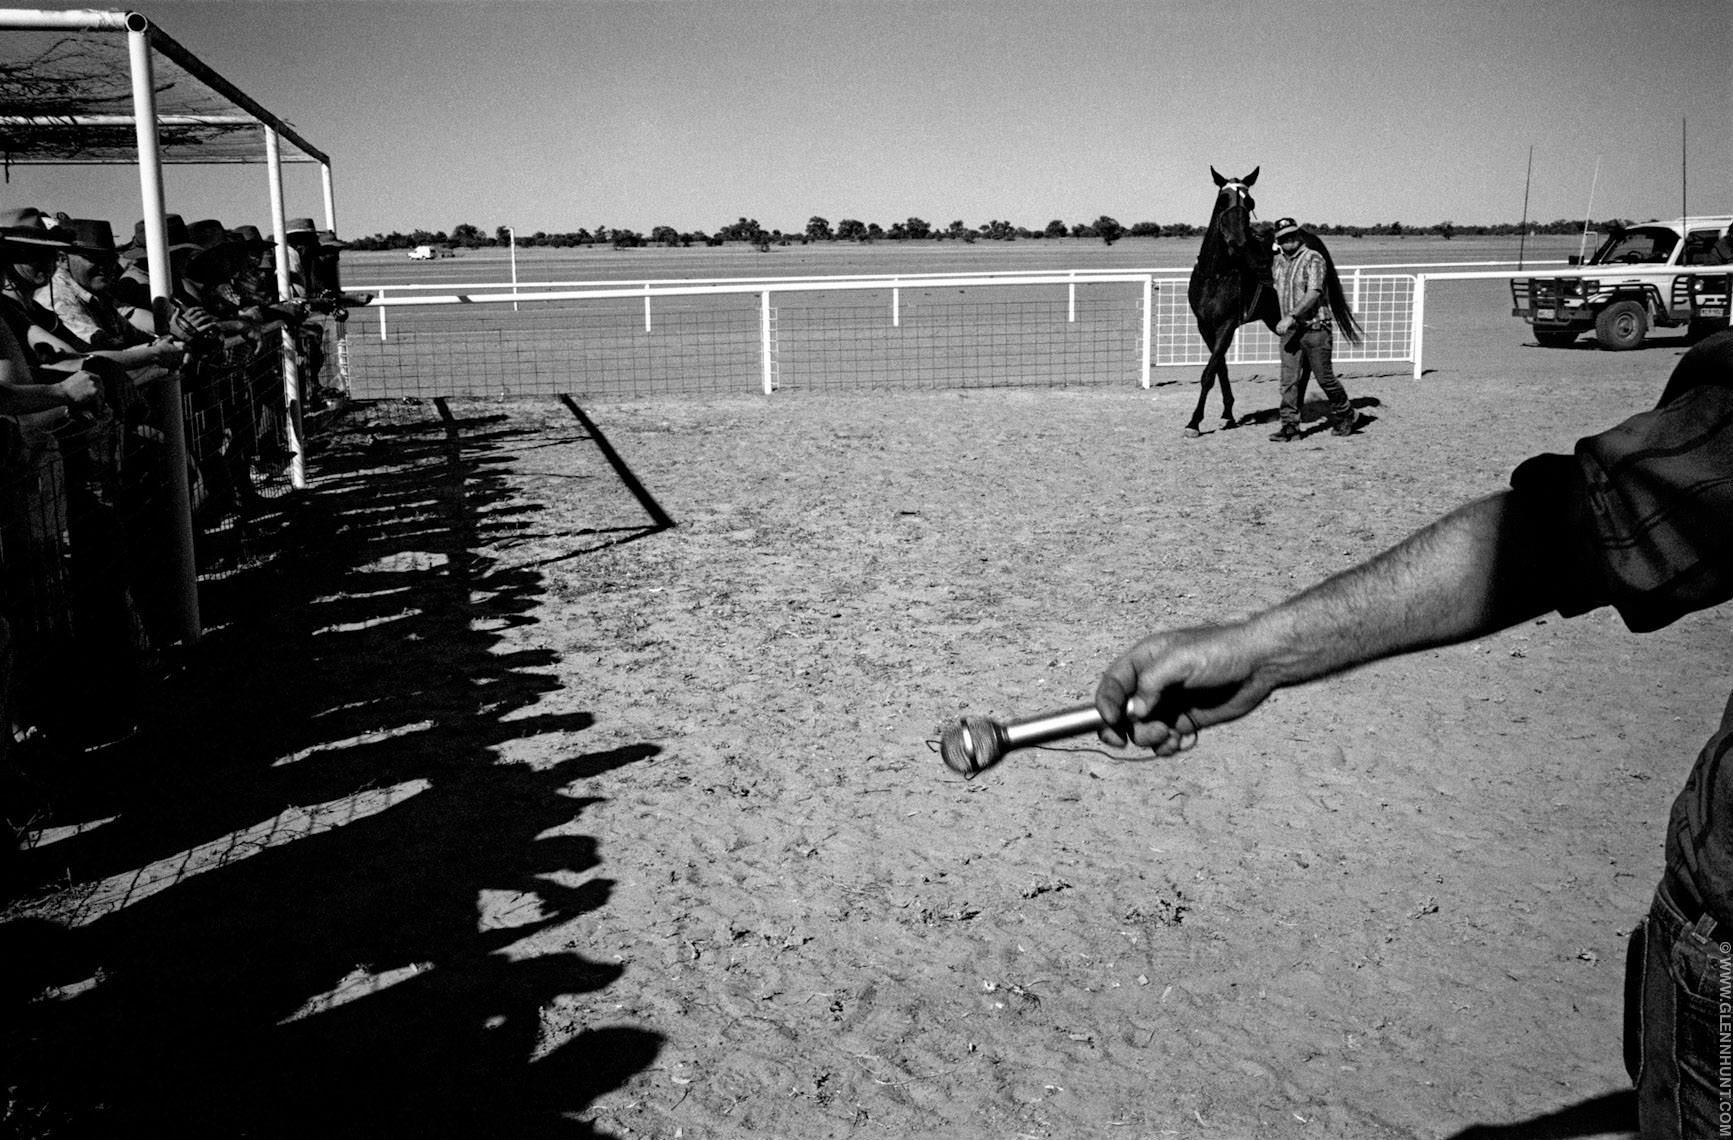 Horses in the Australian outback. Birdsville Races, Lightning Cr